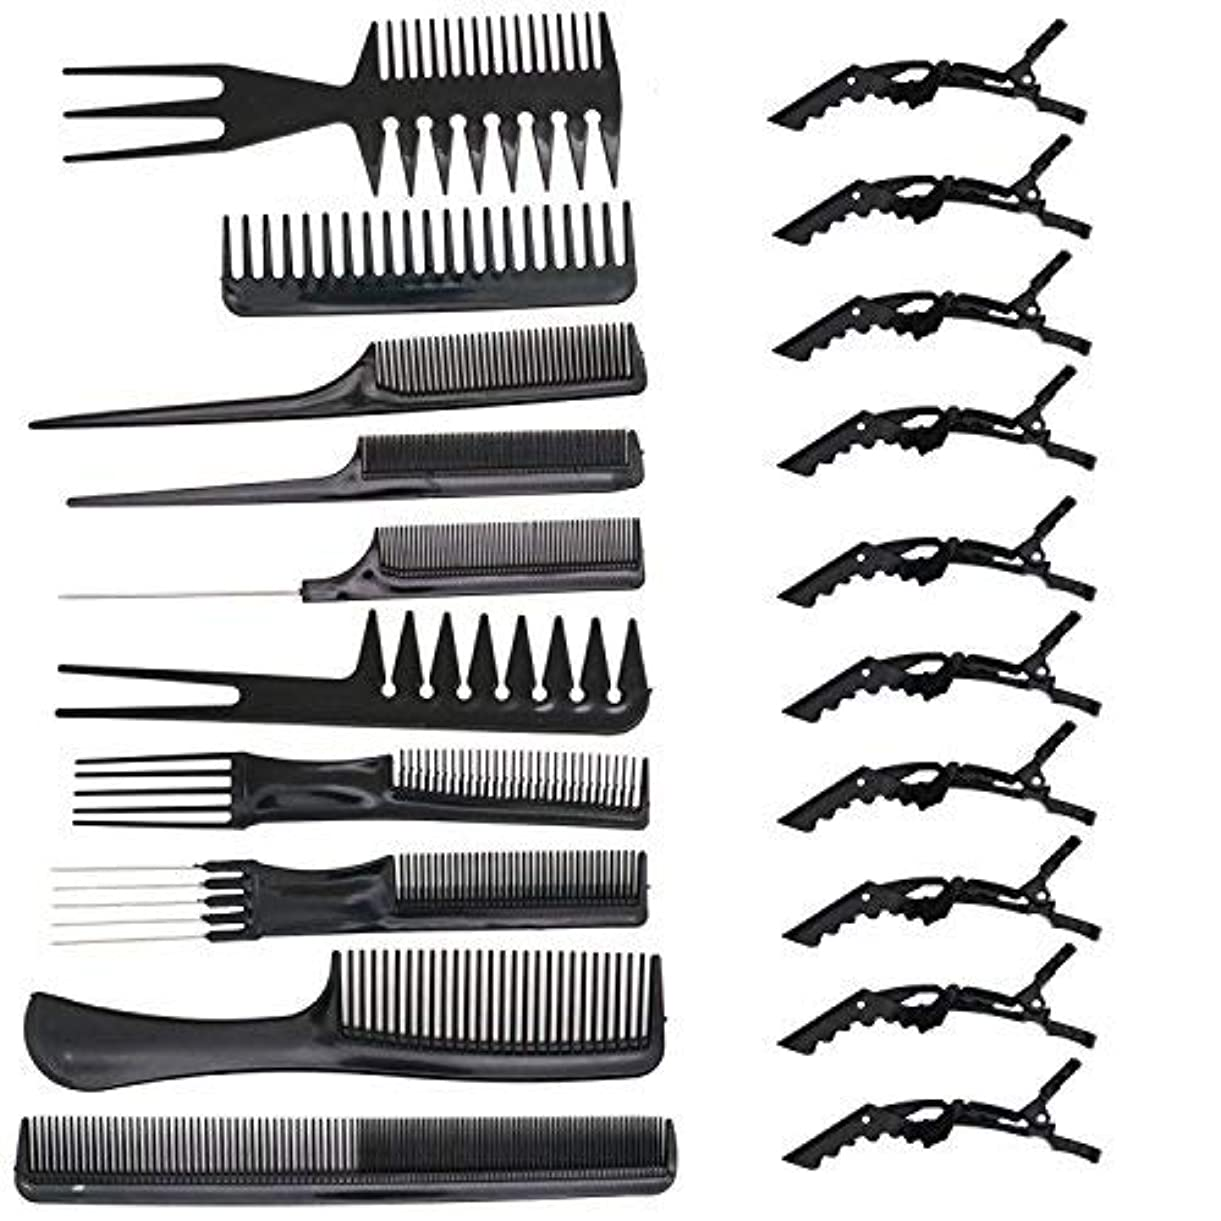 メキシコポスト印象派座標HUELE 10 Pcs Professional Hair Styling Comb with Styling Clips Hair Salon Styling Barbers Set Kit [並行輸入品]